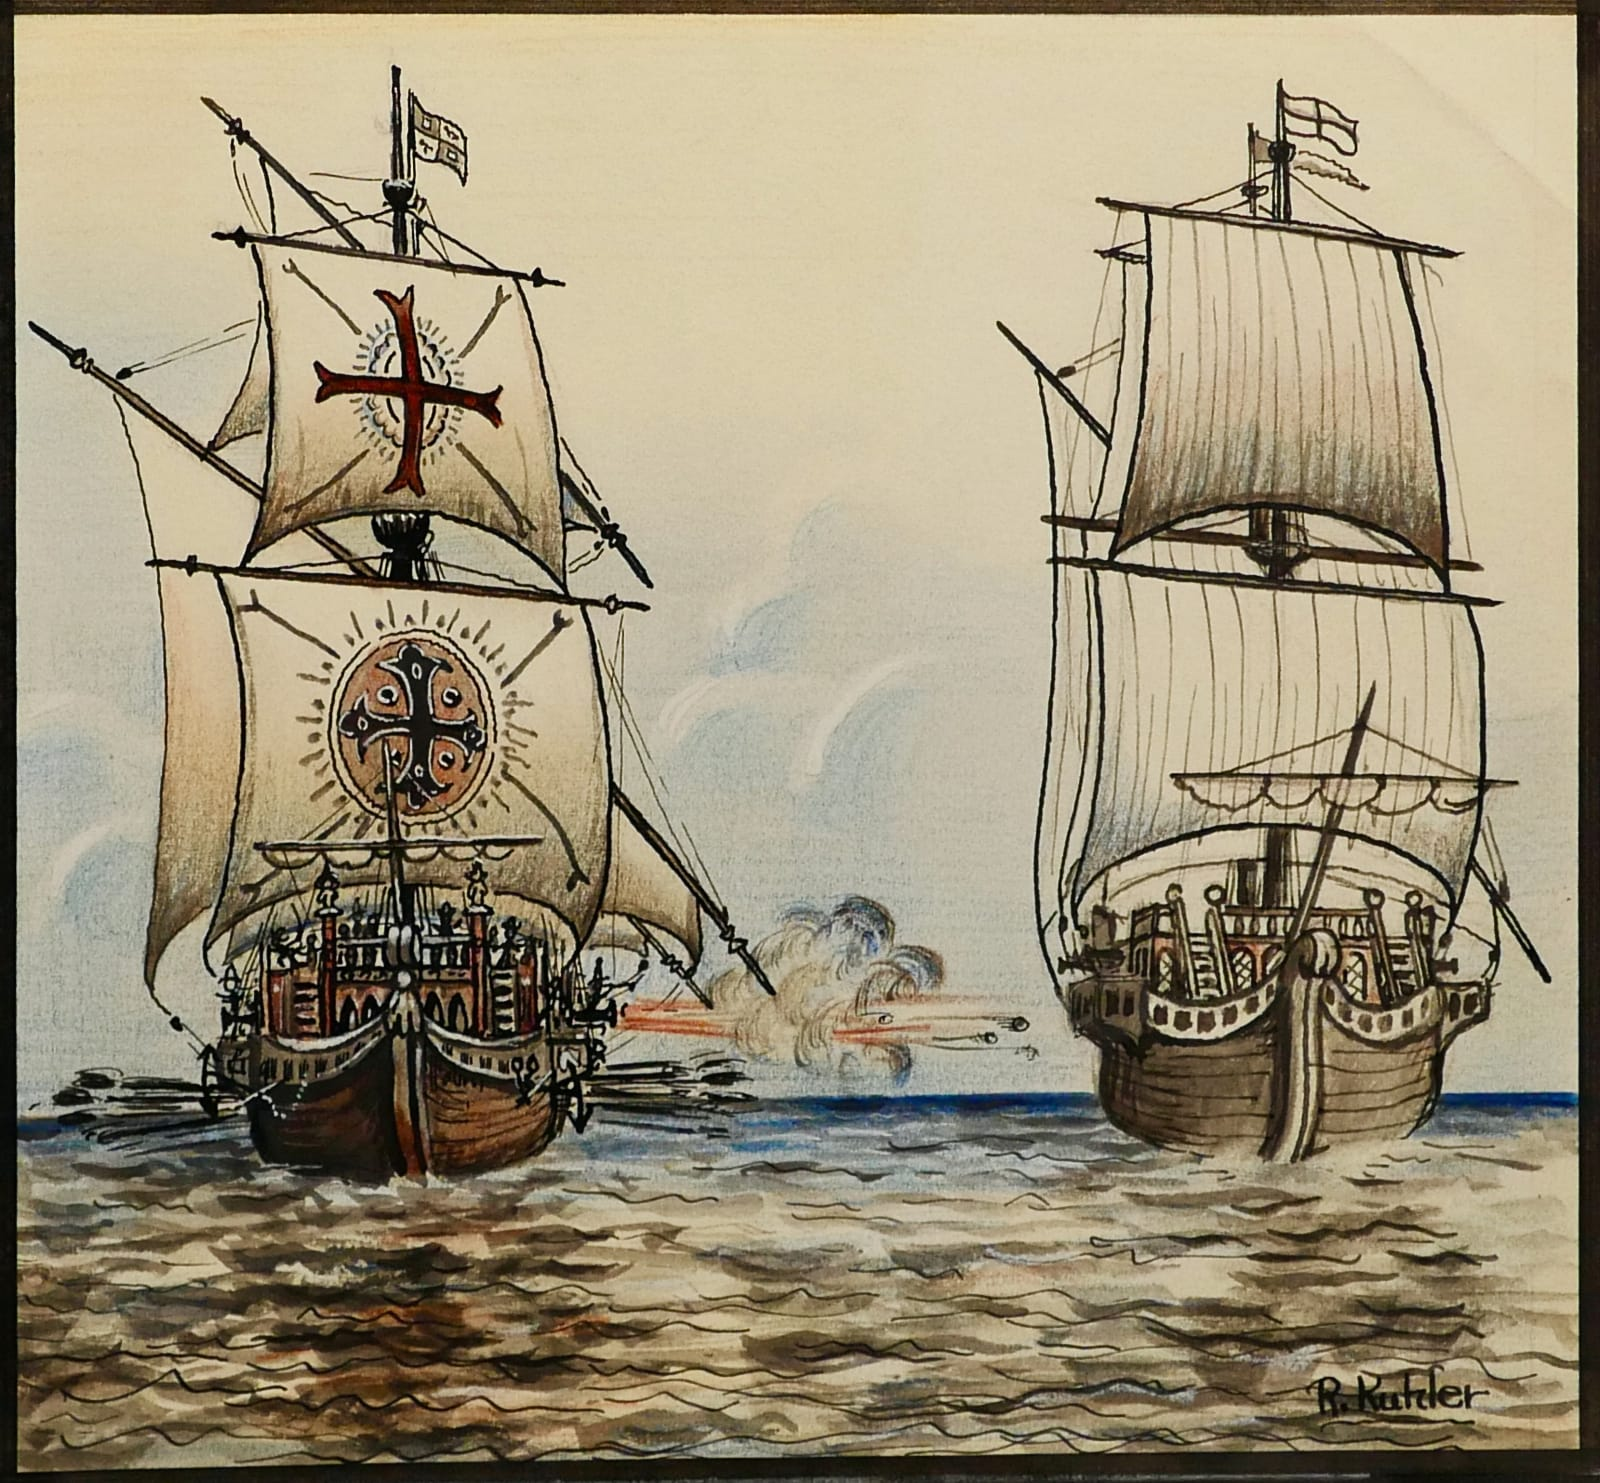 Spanish galley ship firing on the Albatross ca. 1950s Ink, colored pencil, and gouache on heavy sketch paper 6 3/4 x 7 1/4 in. (RK 134) $6,500